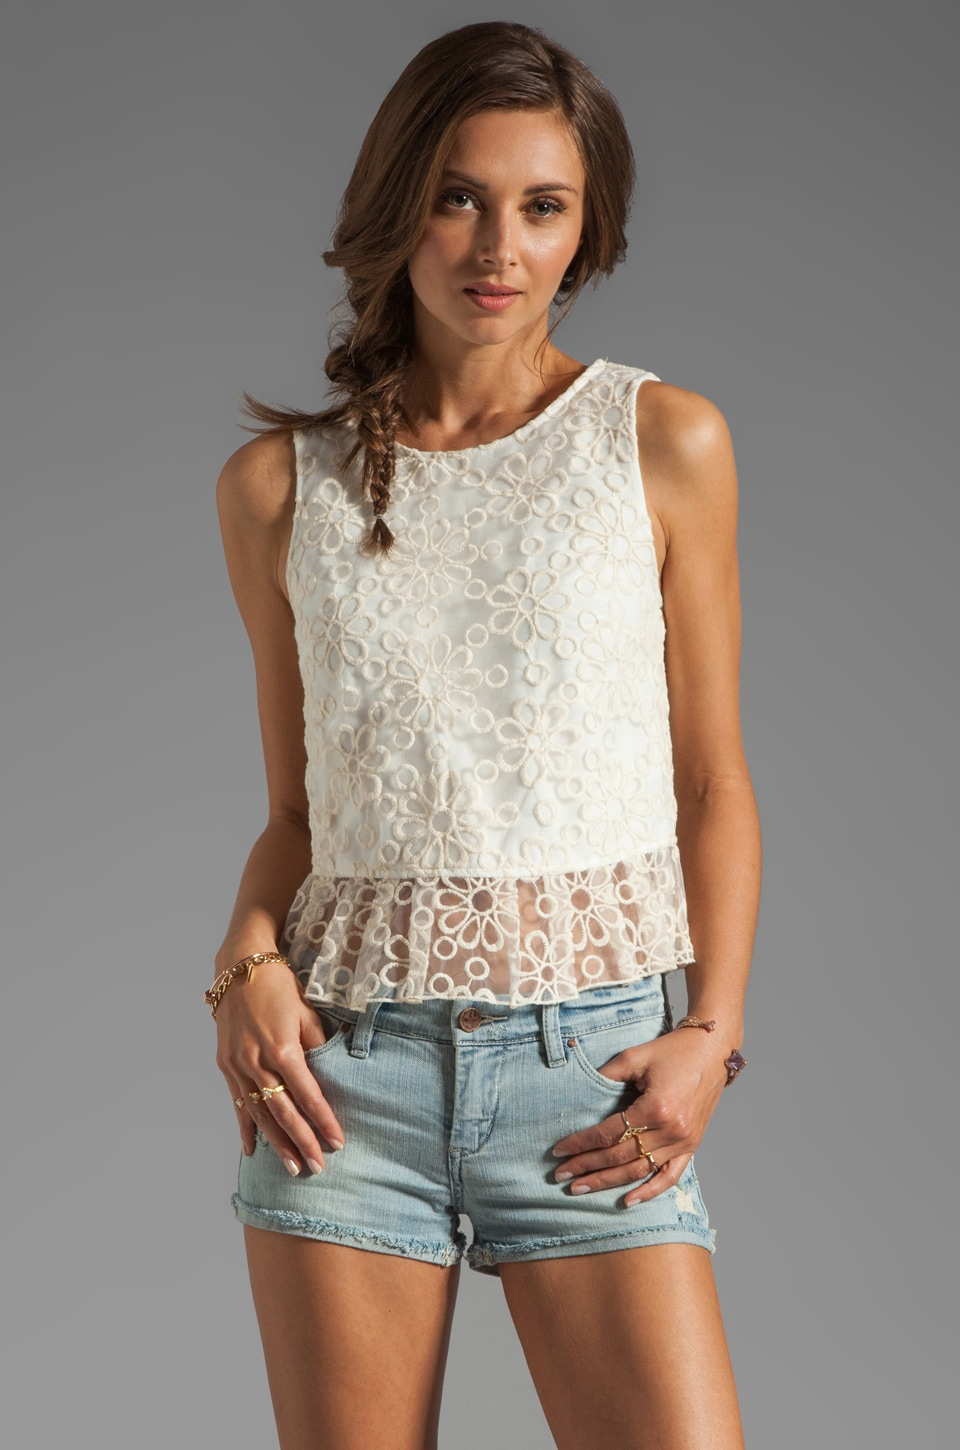 Dolce Vita Anja Daisy Organza Top in Natural